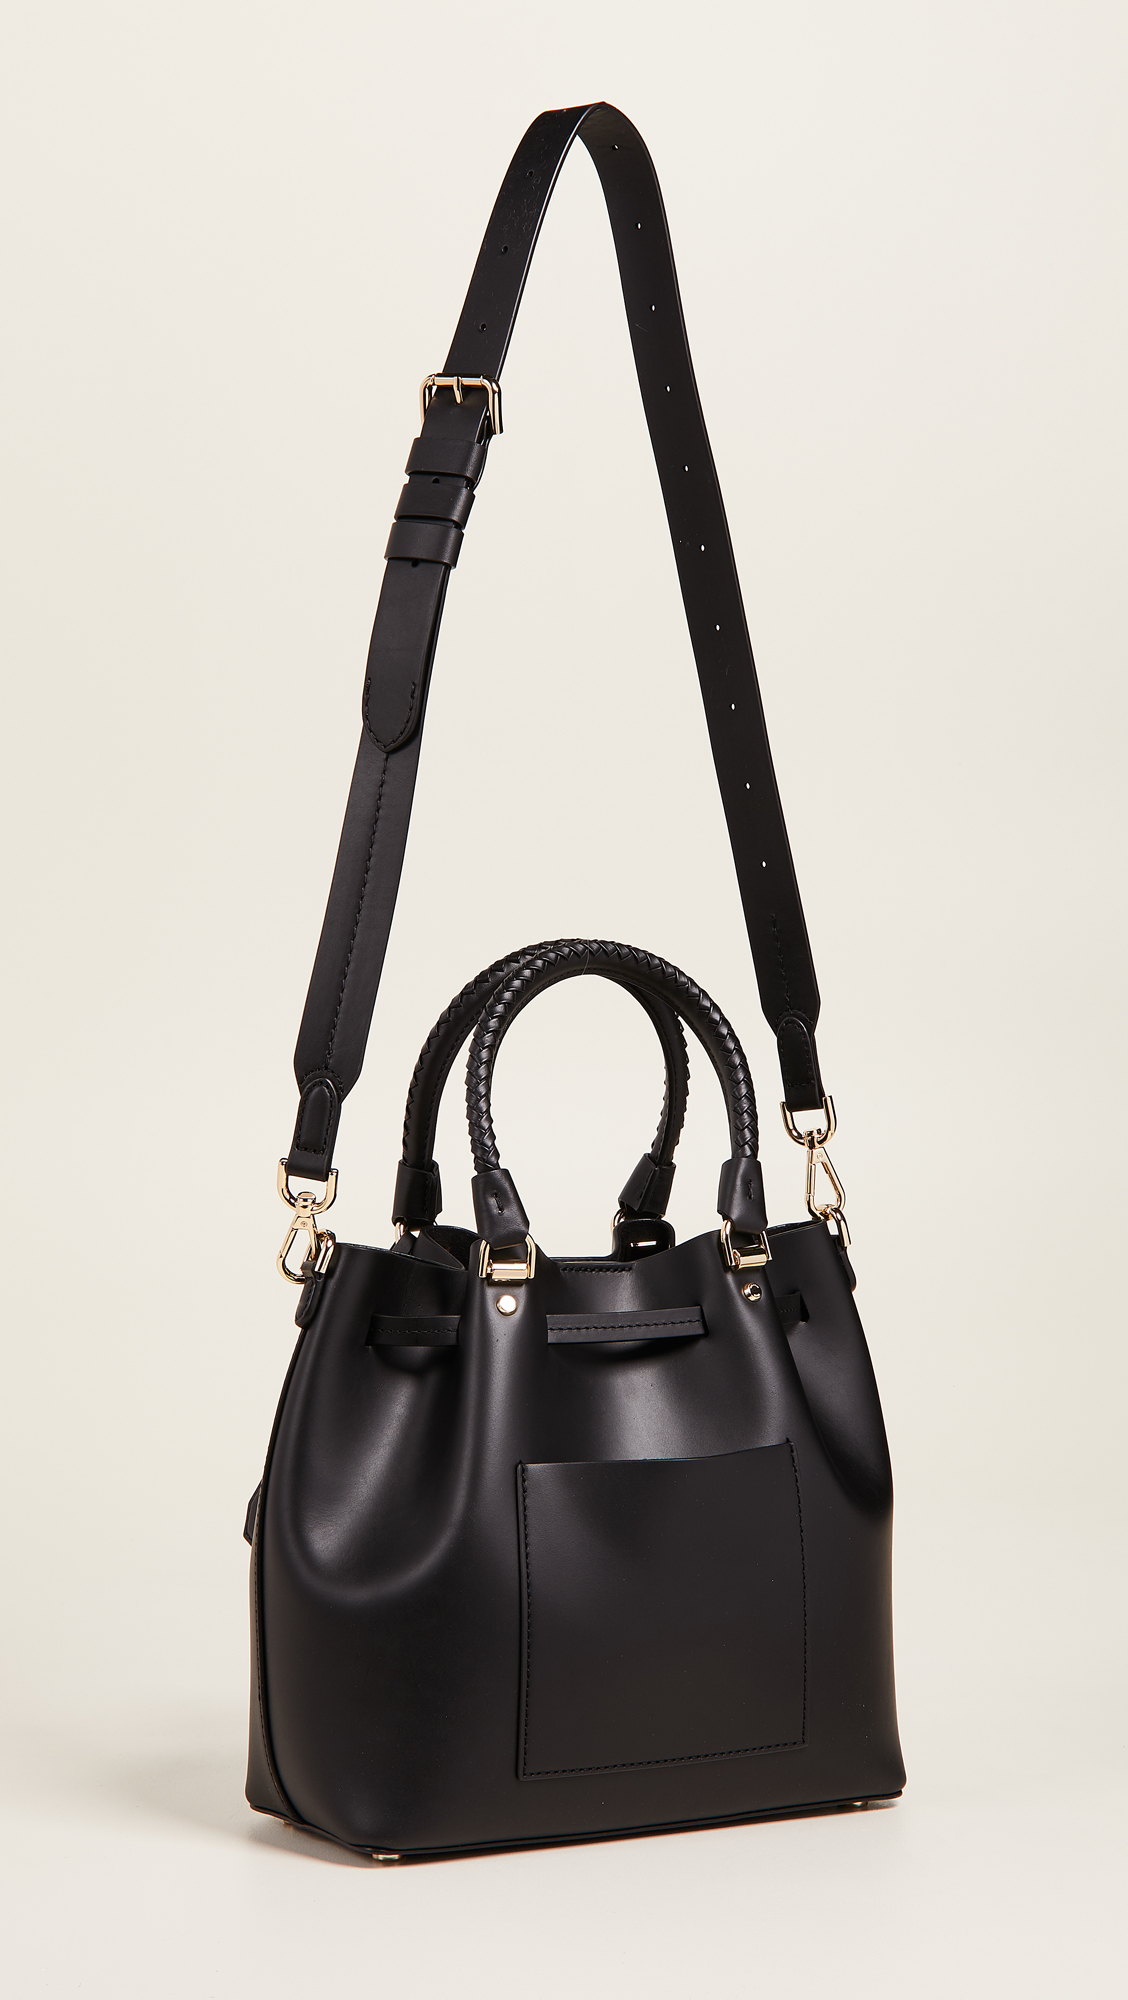 ee58aa4e249c MICHAEL Michael Kors Blakely Medium Bucket Bag